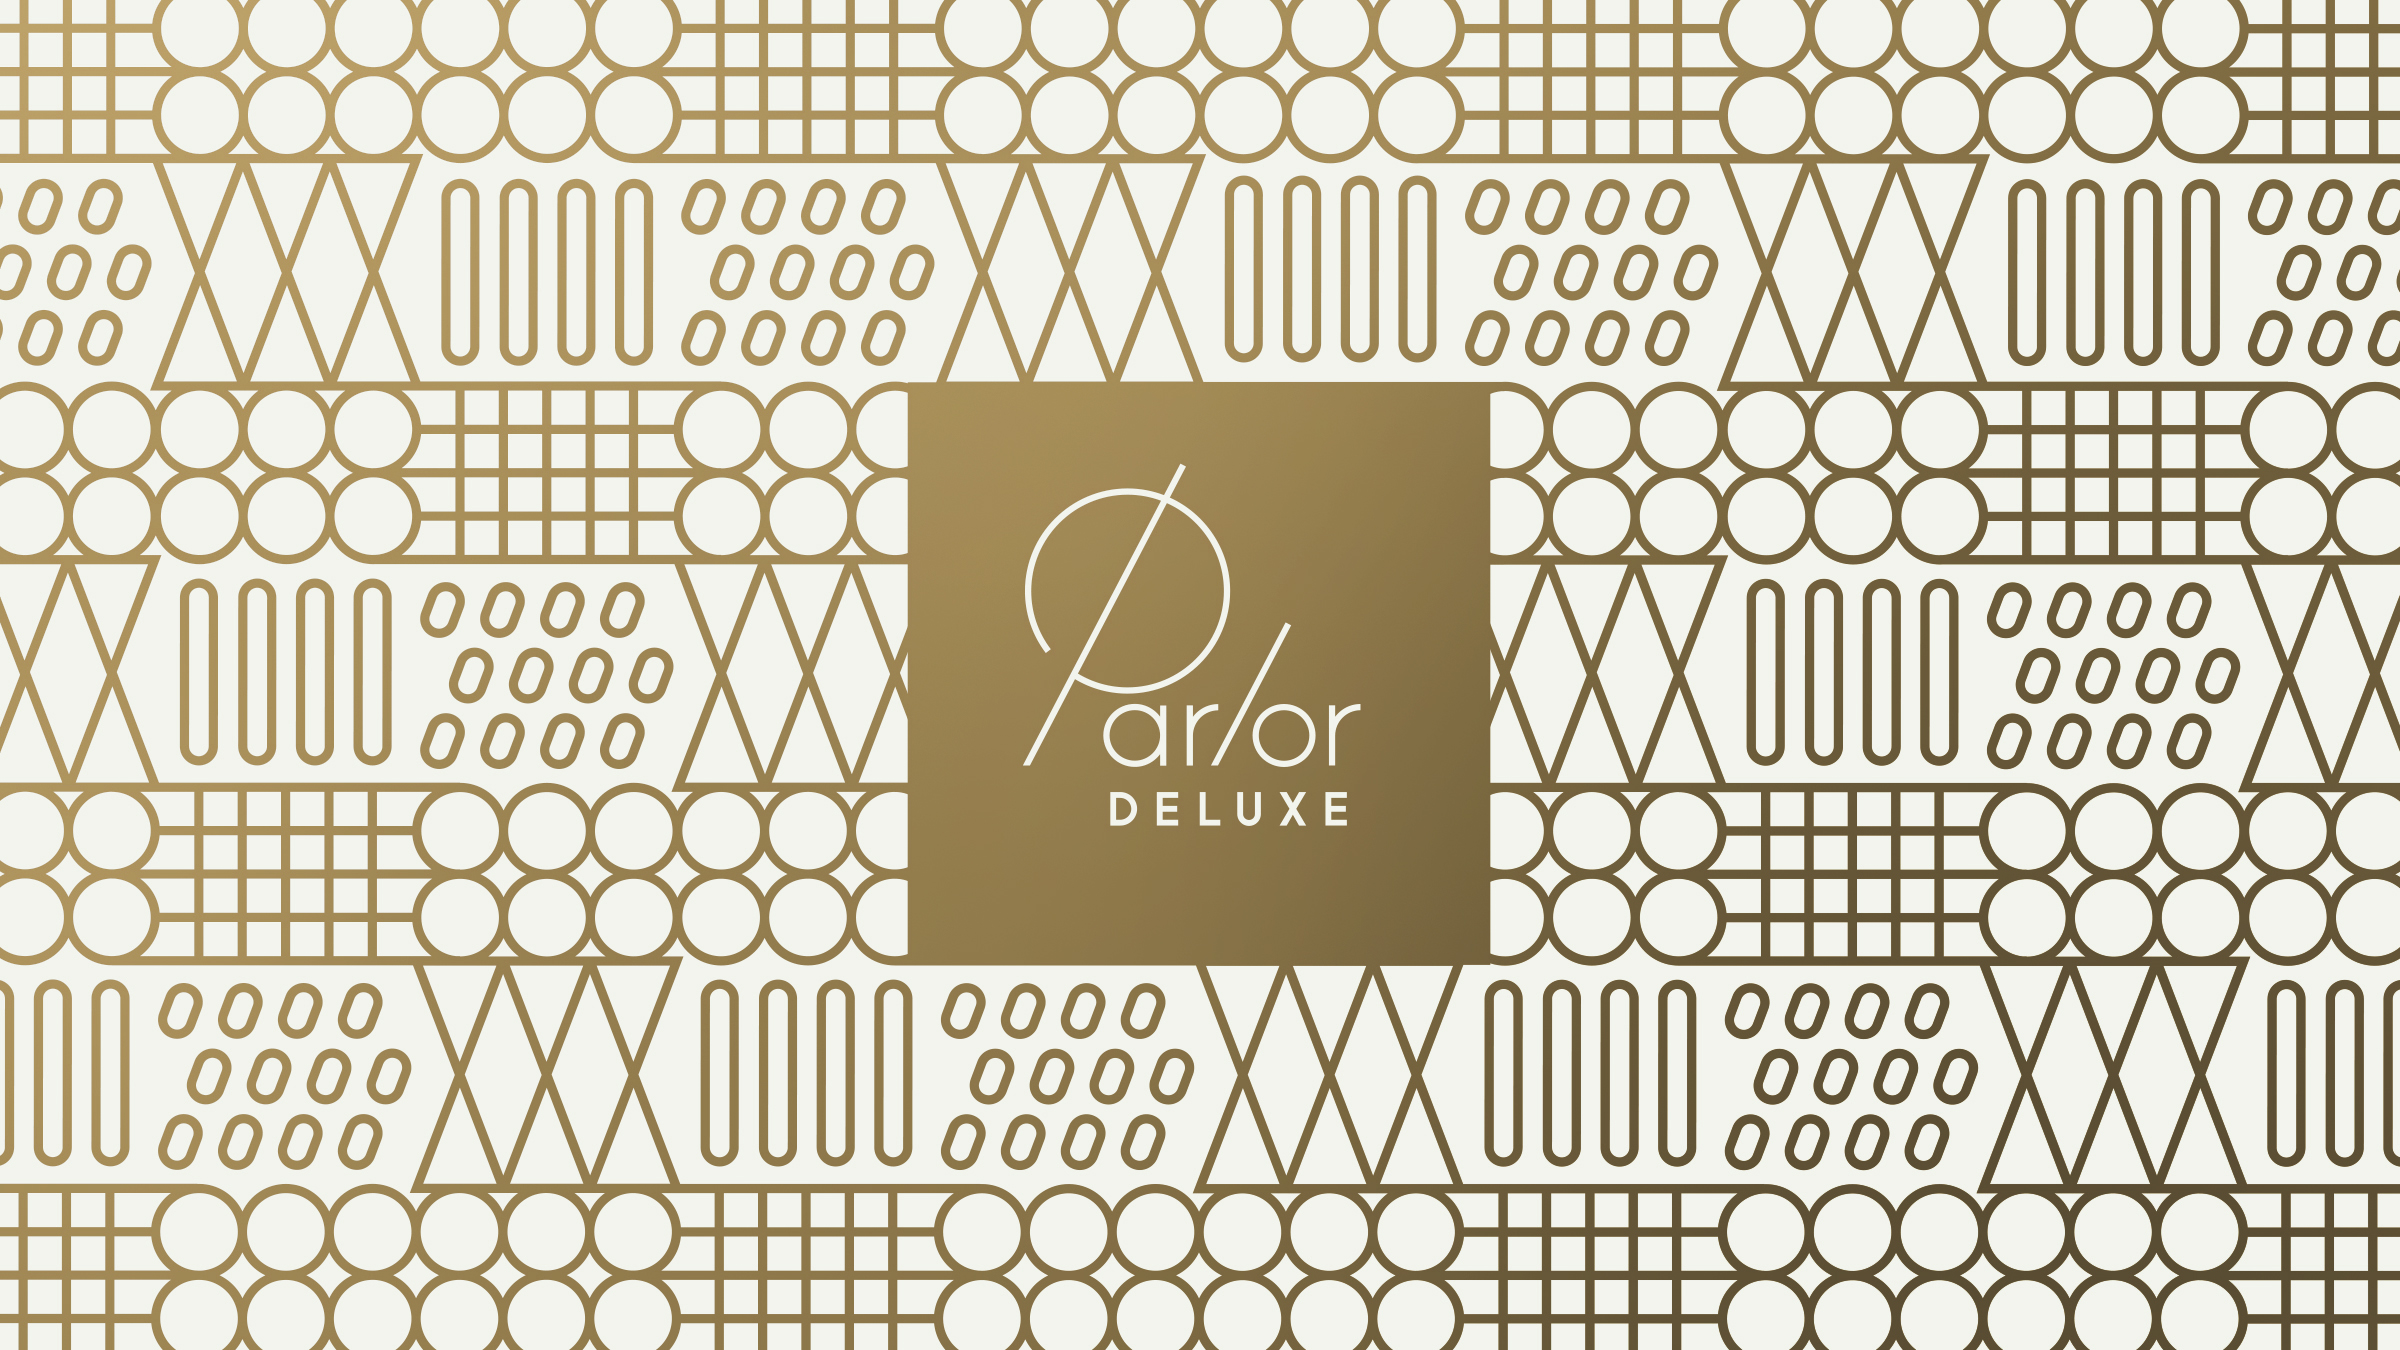 Parlor Deluxe Logo and Line Pattern